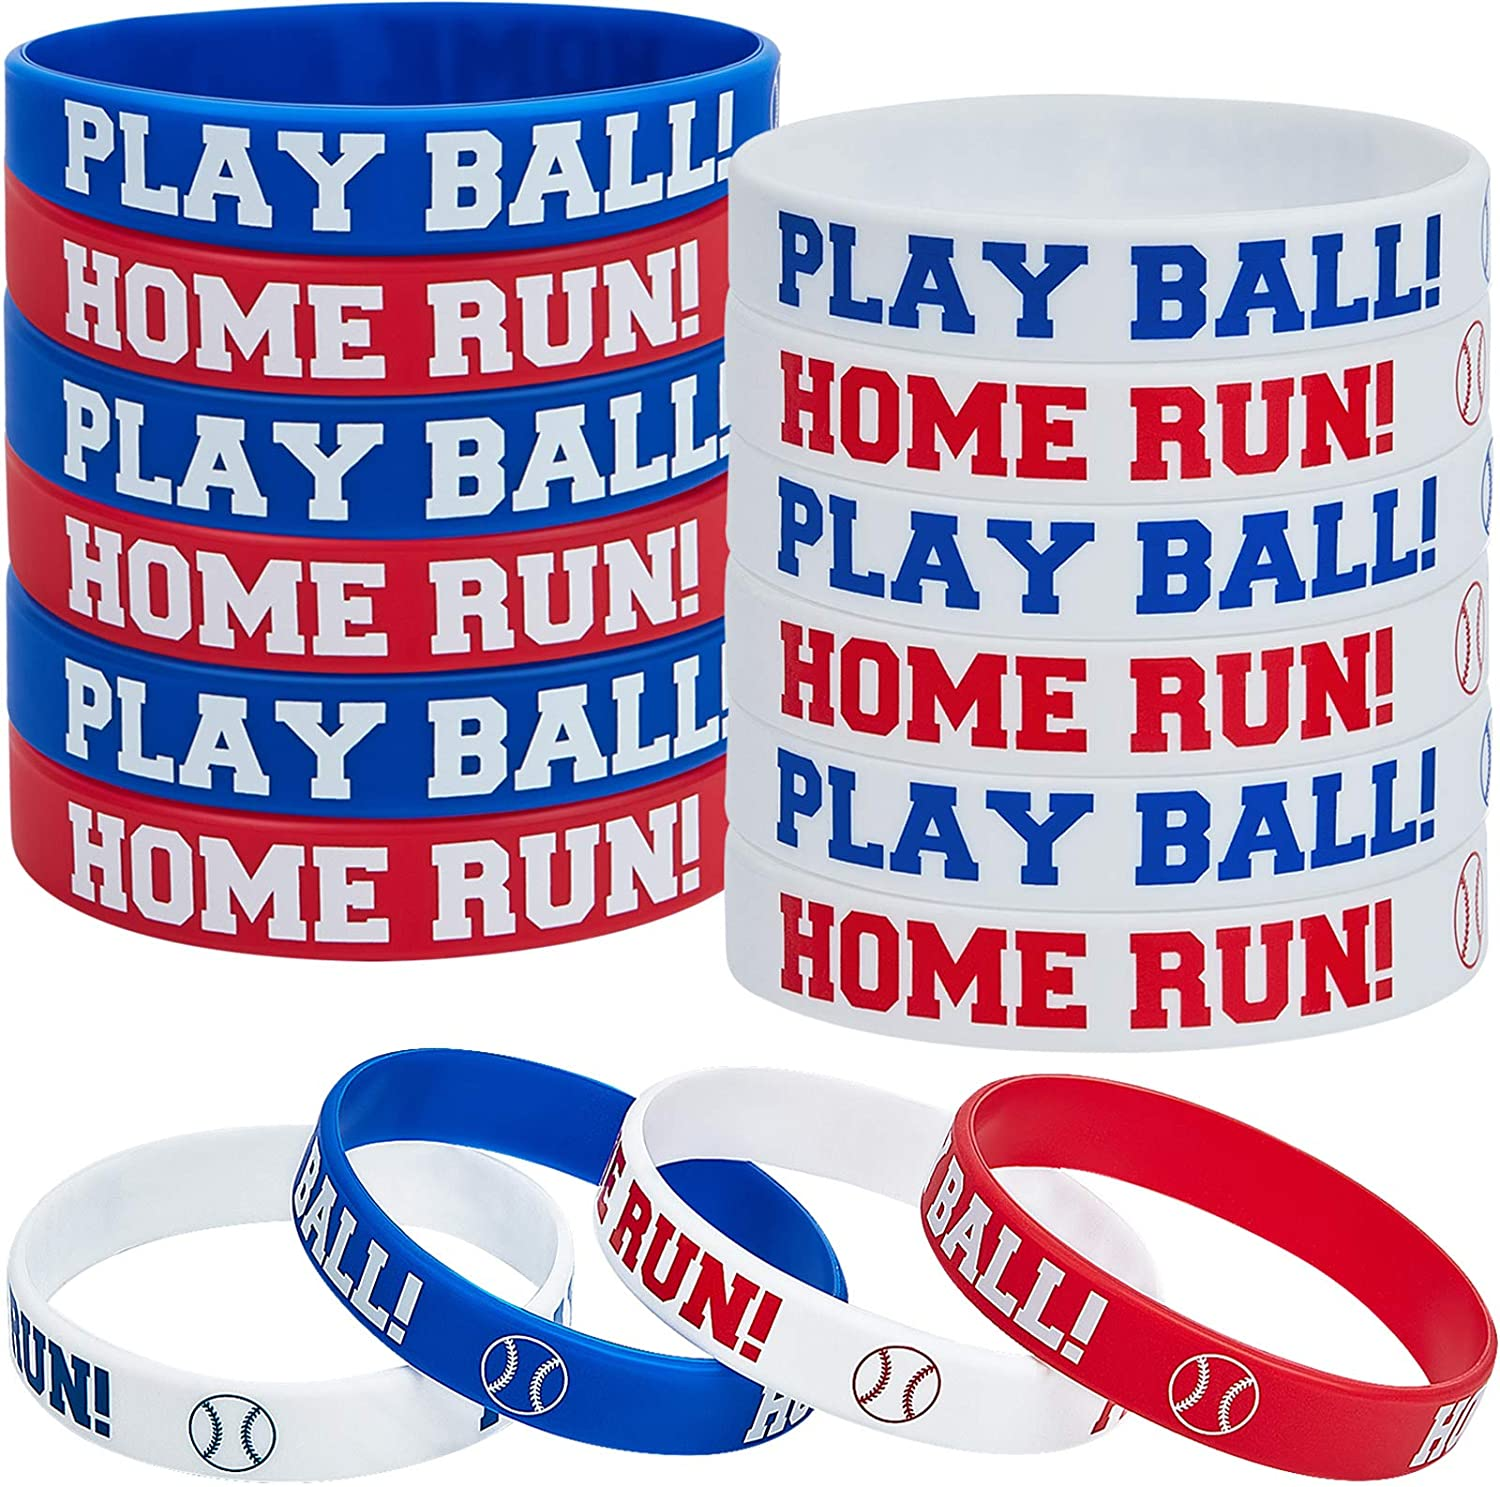 24 Pieces Baseball Silicone Rubber Bracelets Boy Rubber Wristbands Baseball Bracelet Wristbands for School Gifts Party Favors